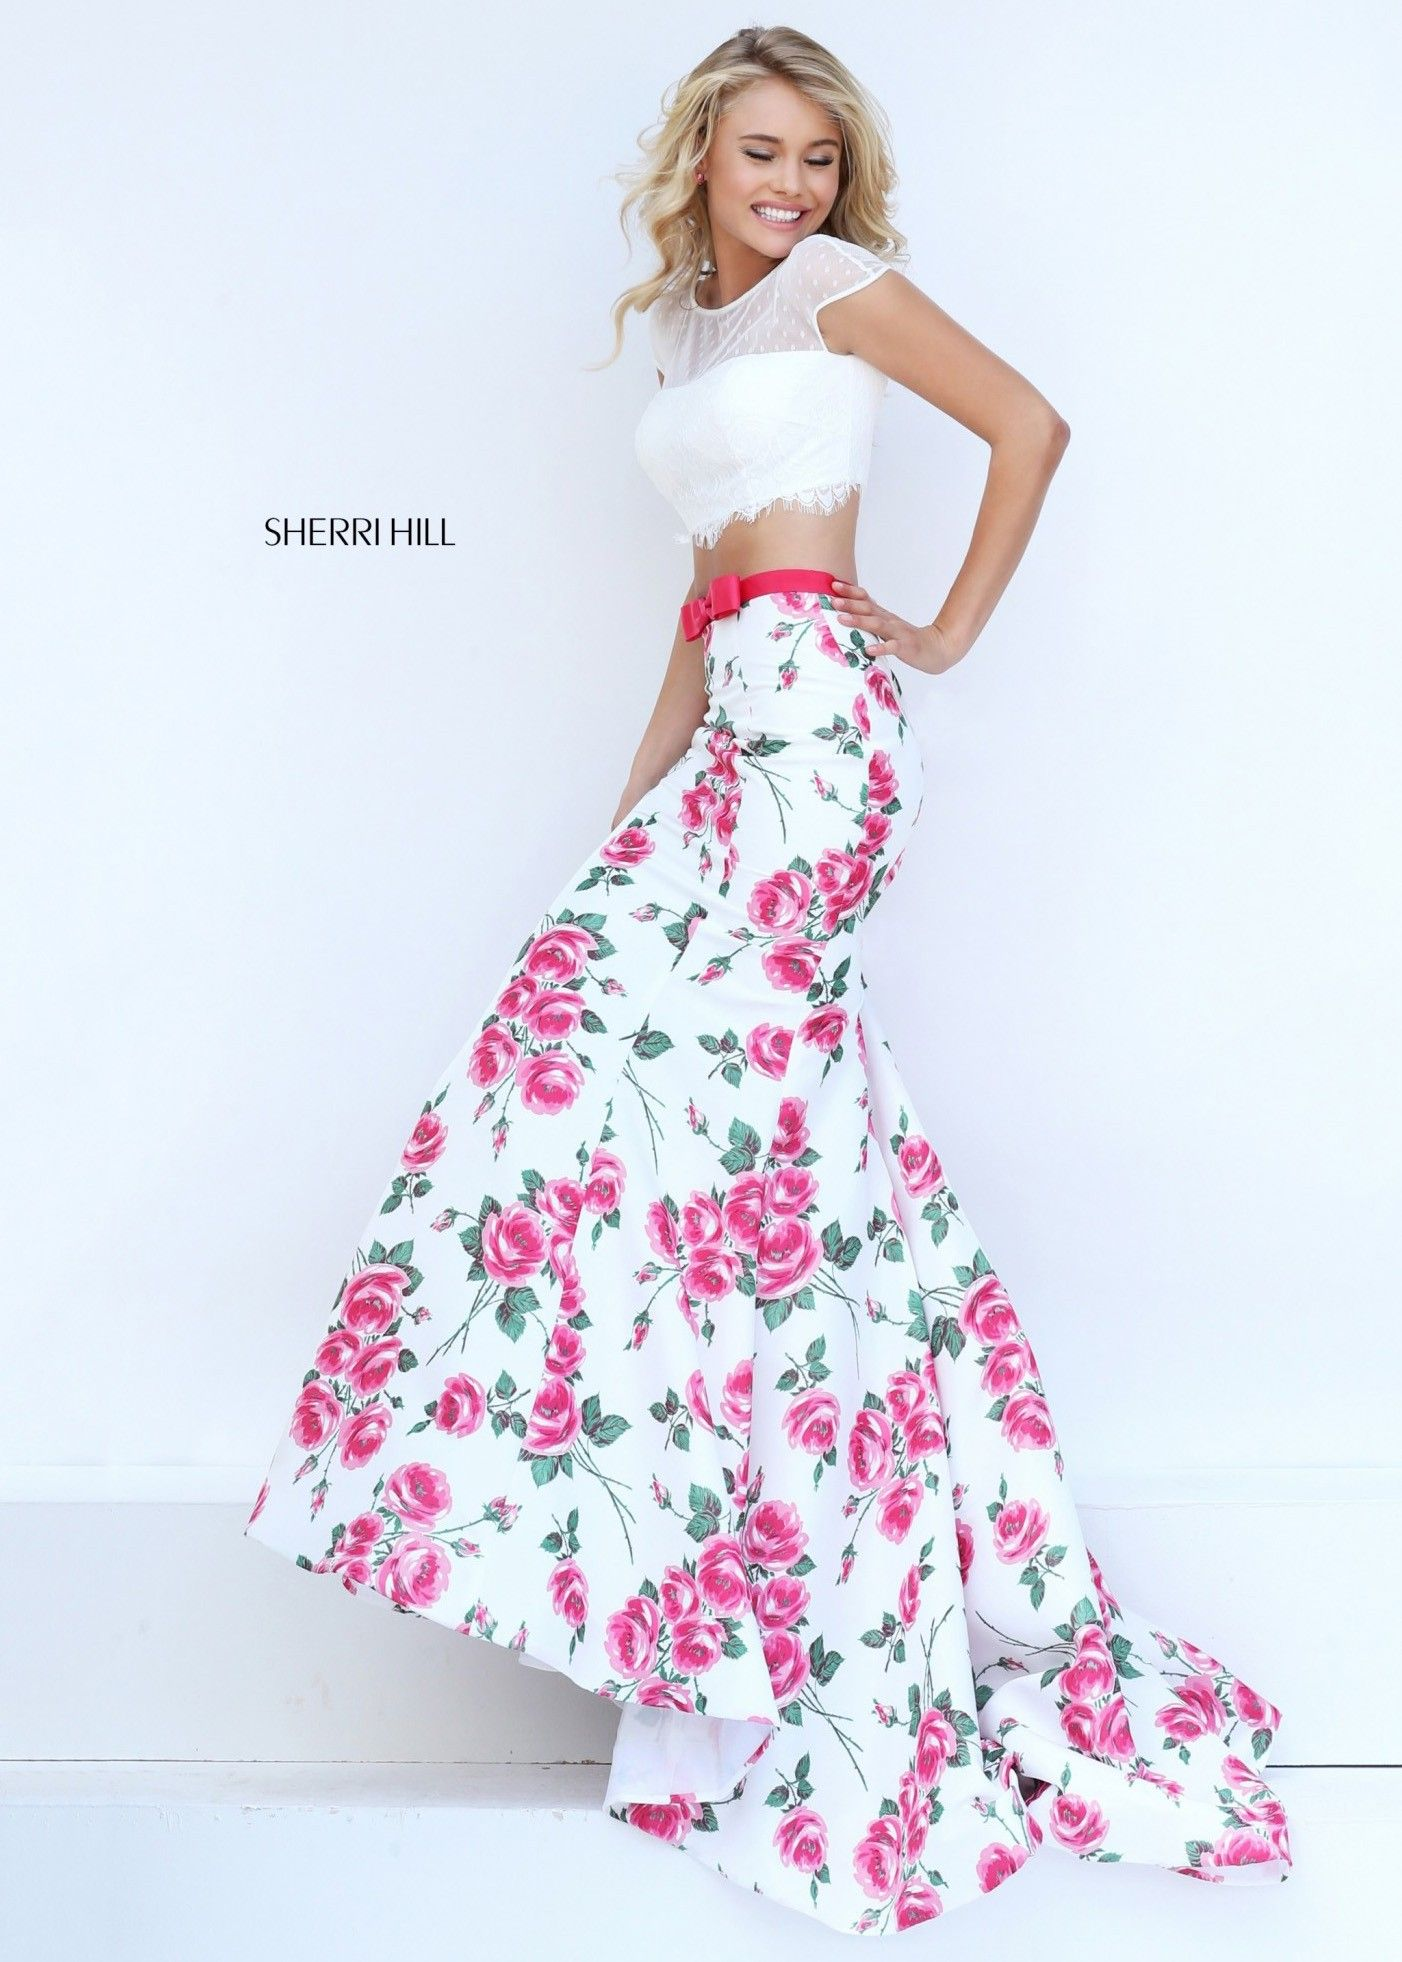 545b2227ff40 Sherri Hill 50421 Colorful Floral Print 2 Piece Mermaid Style Prom Dress  with Scalloped Lace Cropped Top